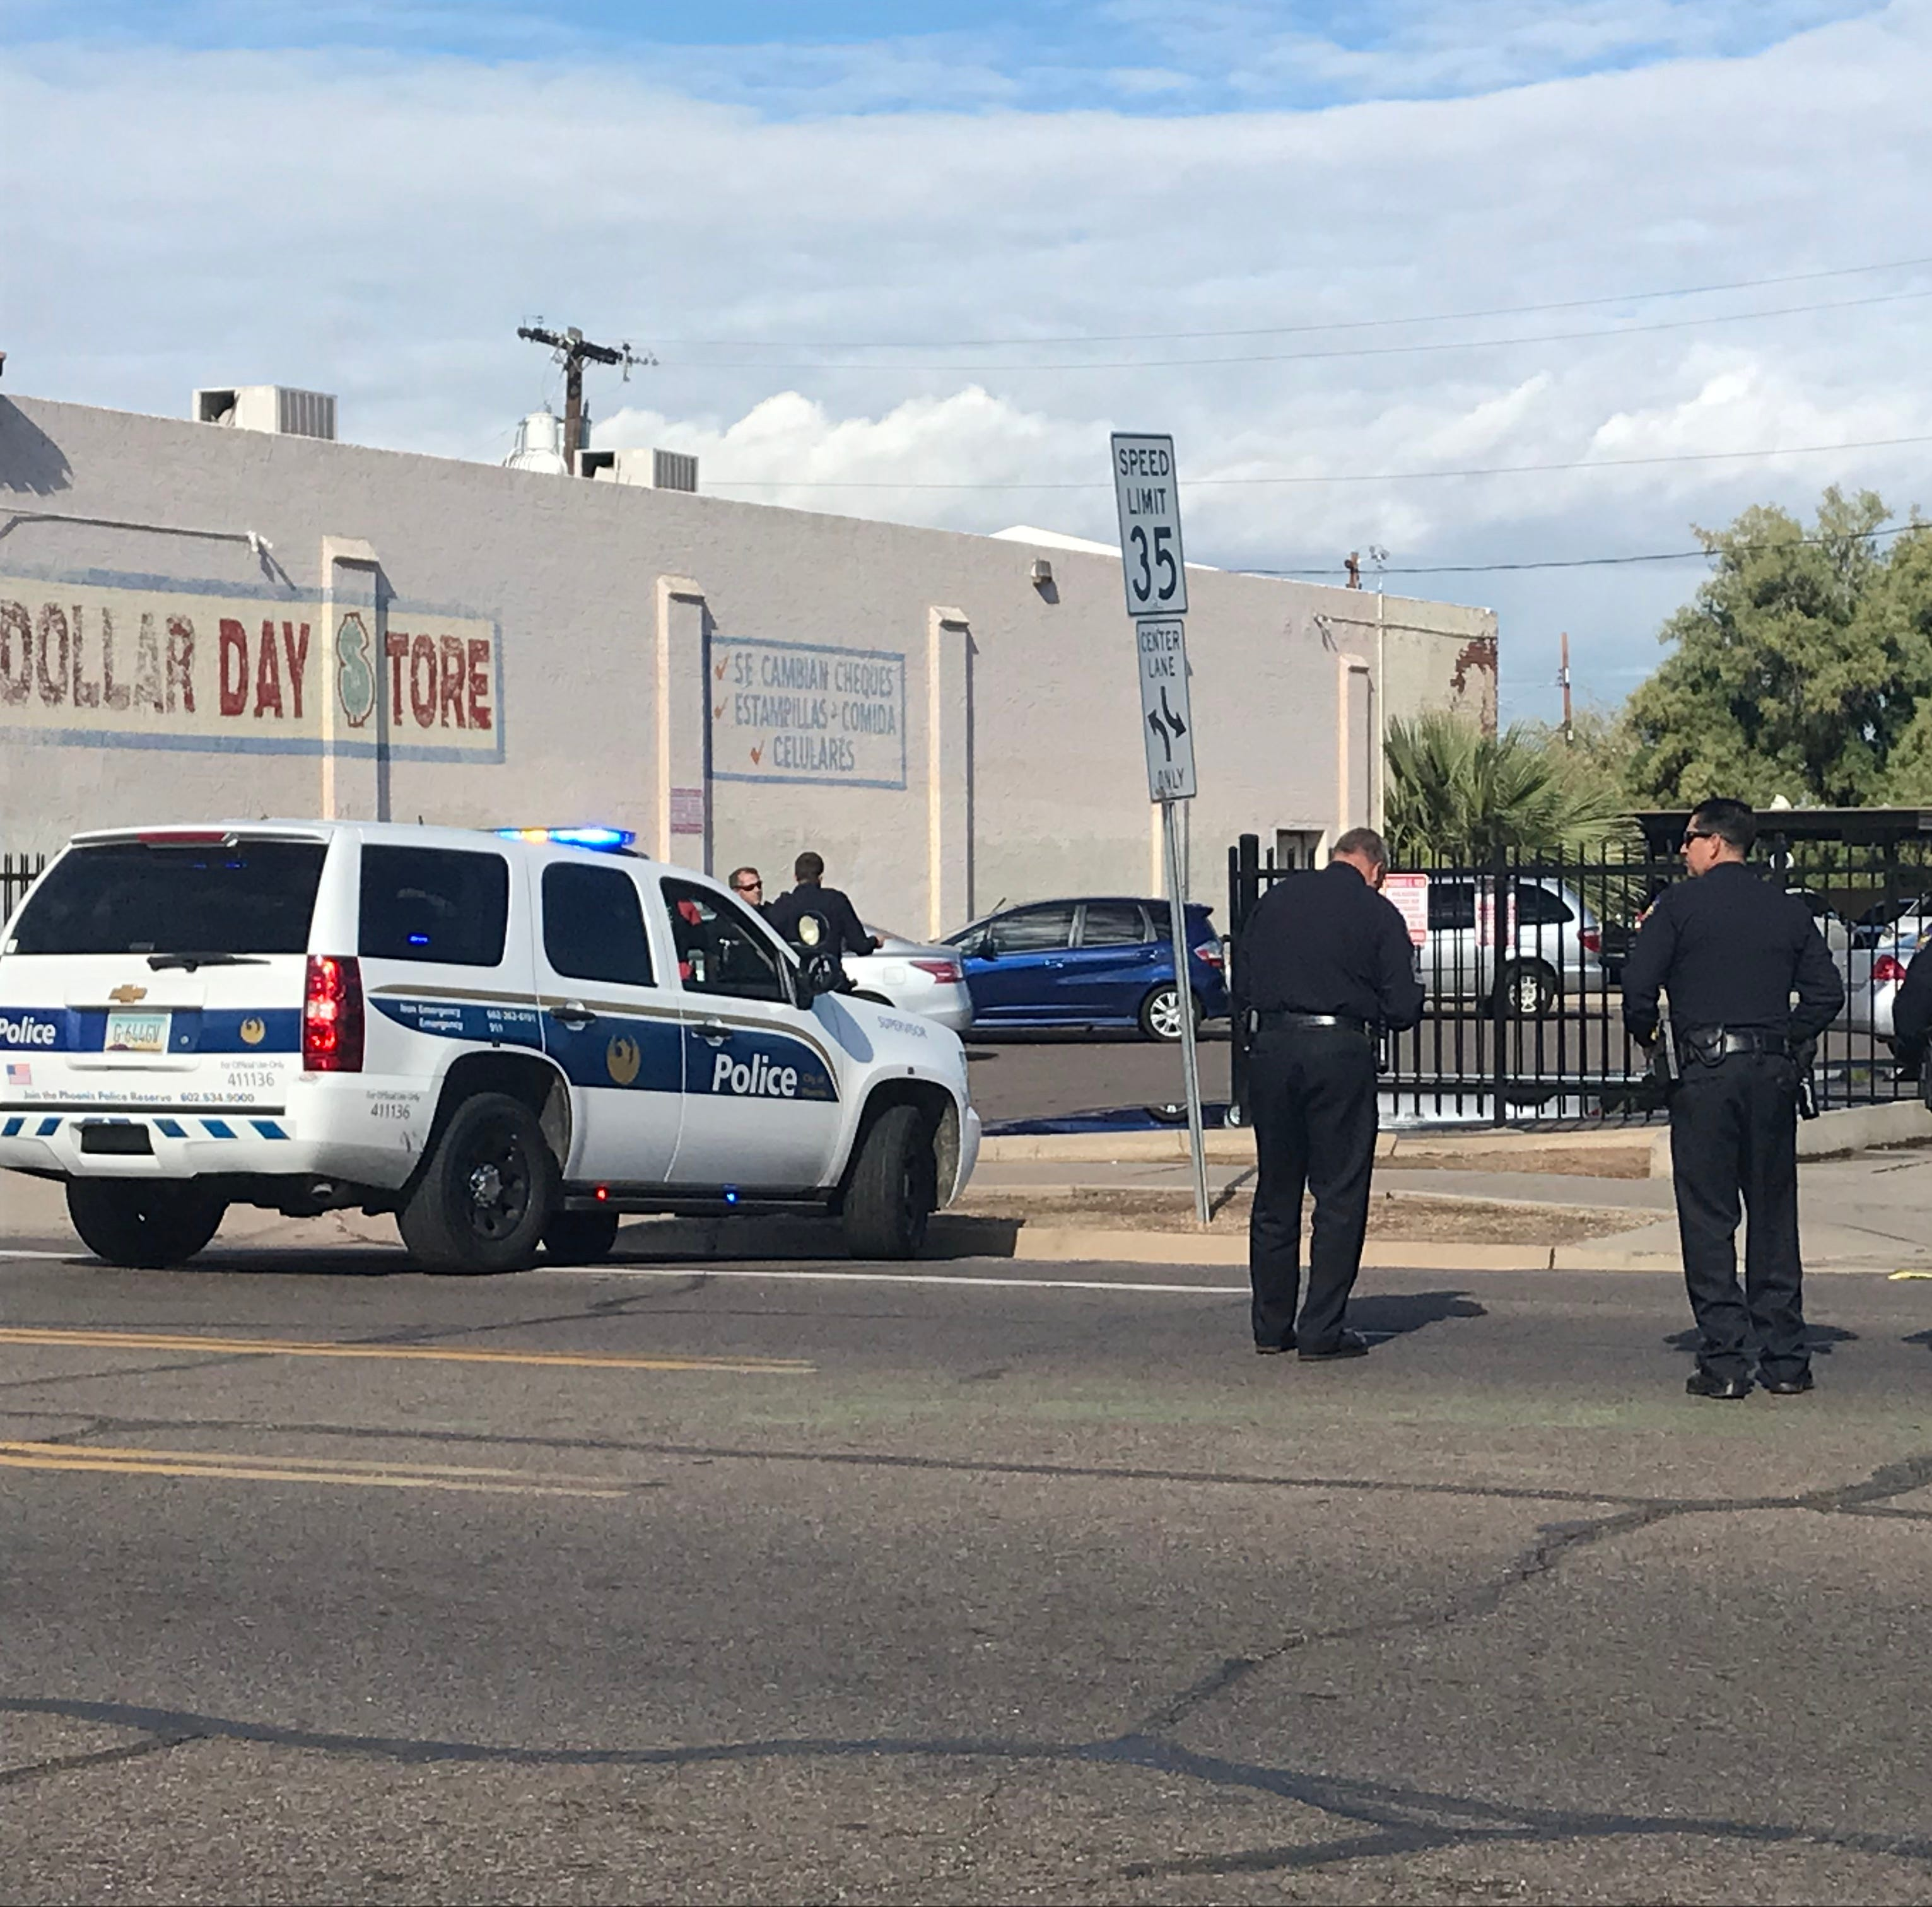 Argument over borrowed bicycle resulted in fatal shooting in Phoenix, police say